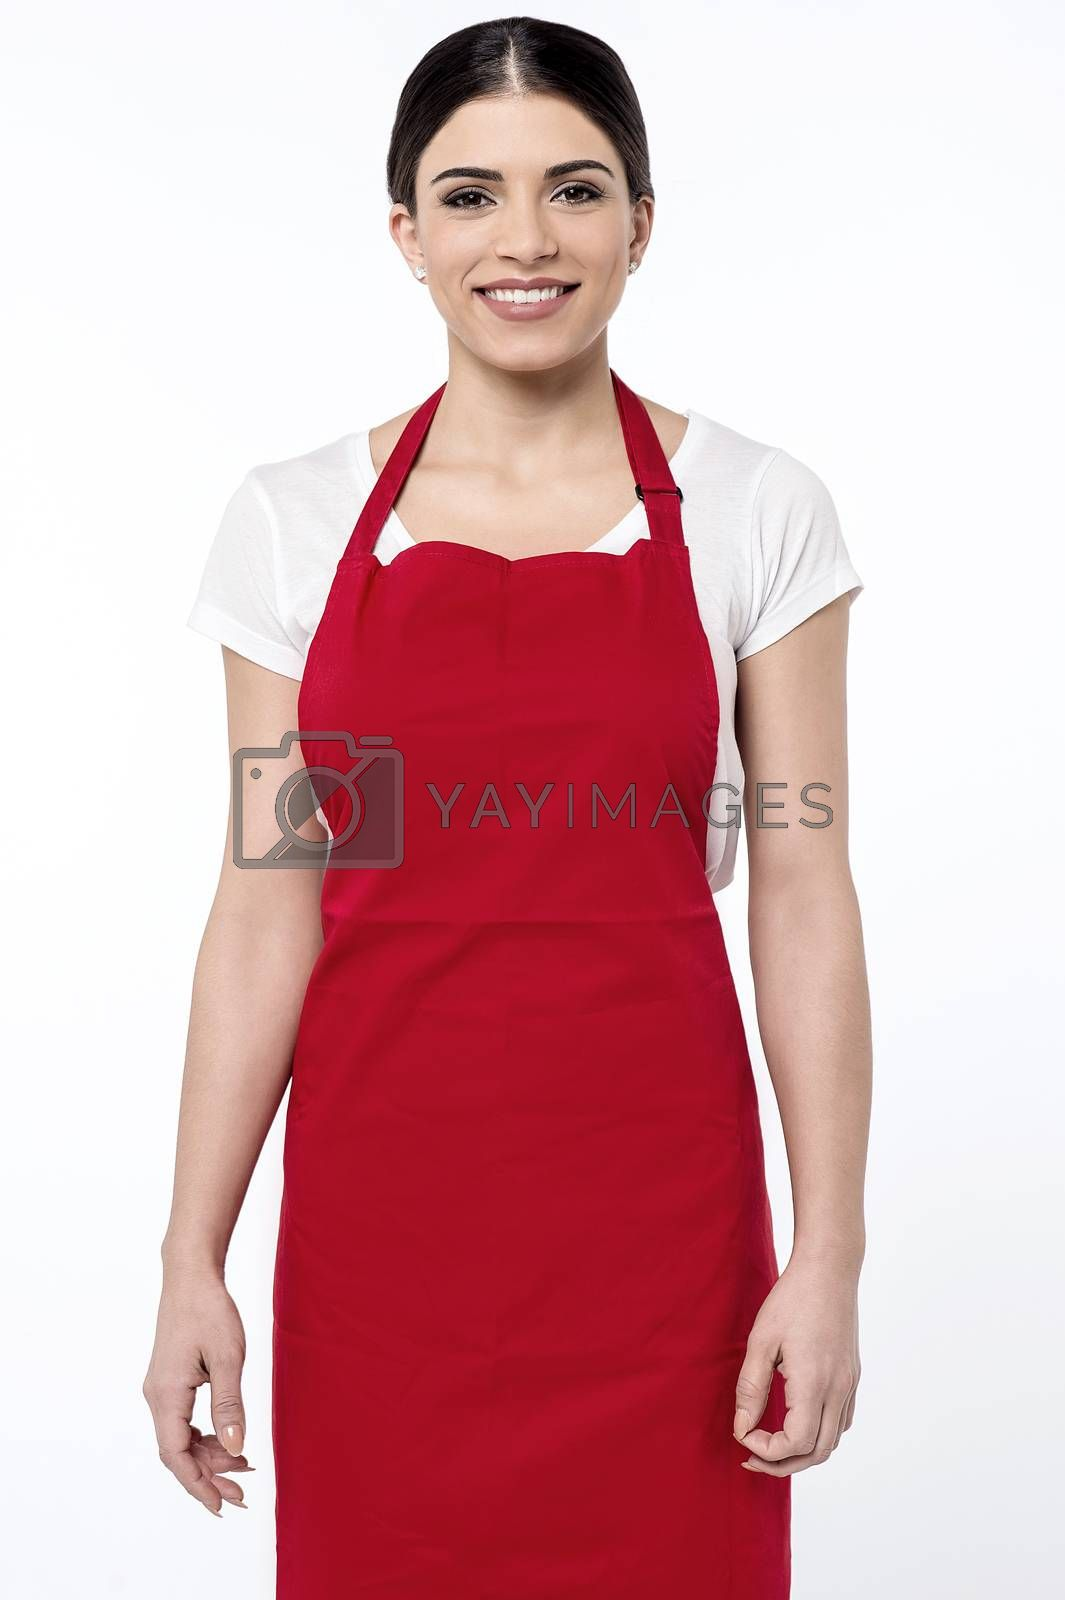 Image of a young female chef posing over white